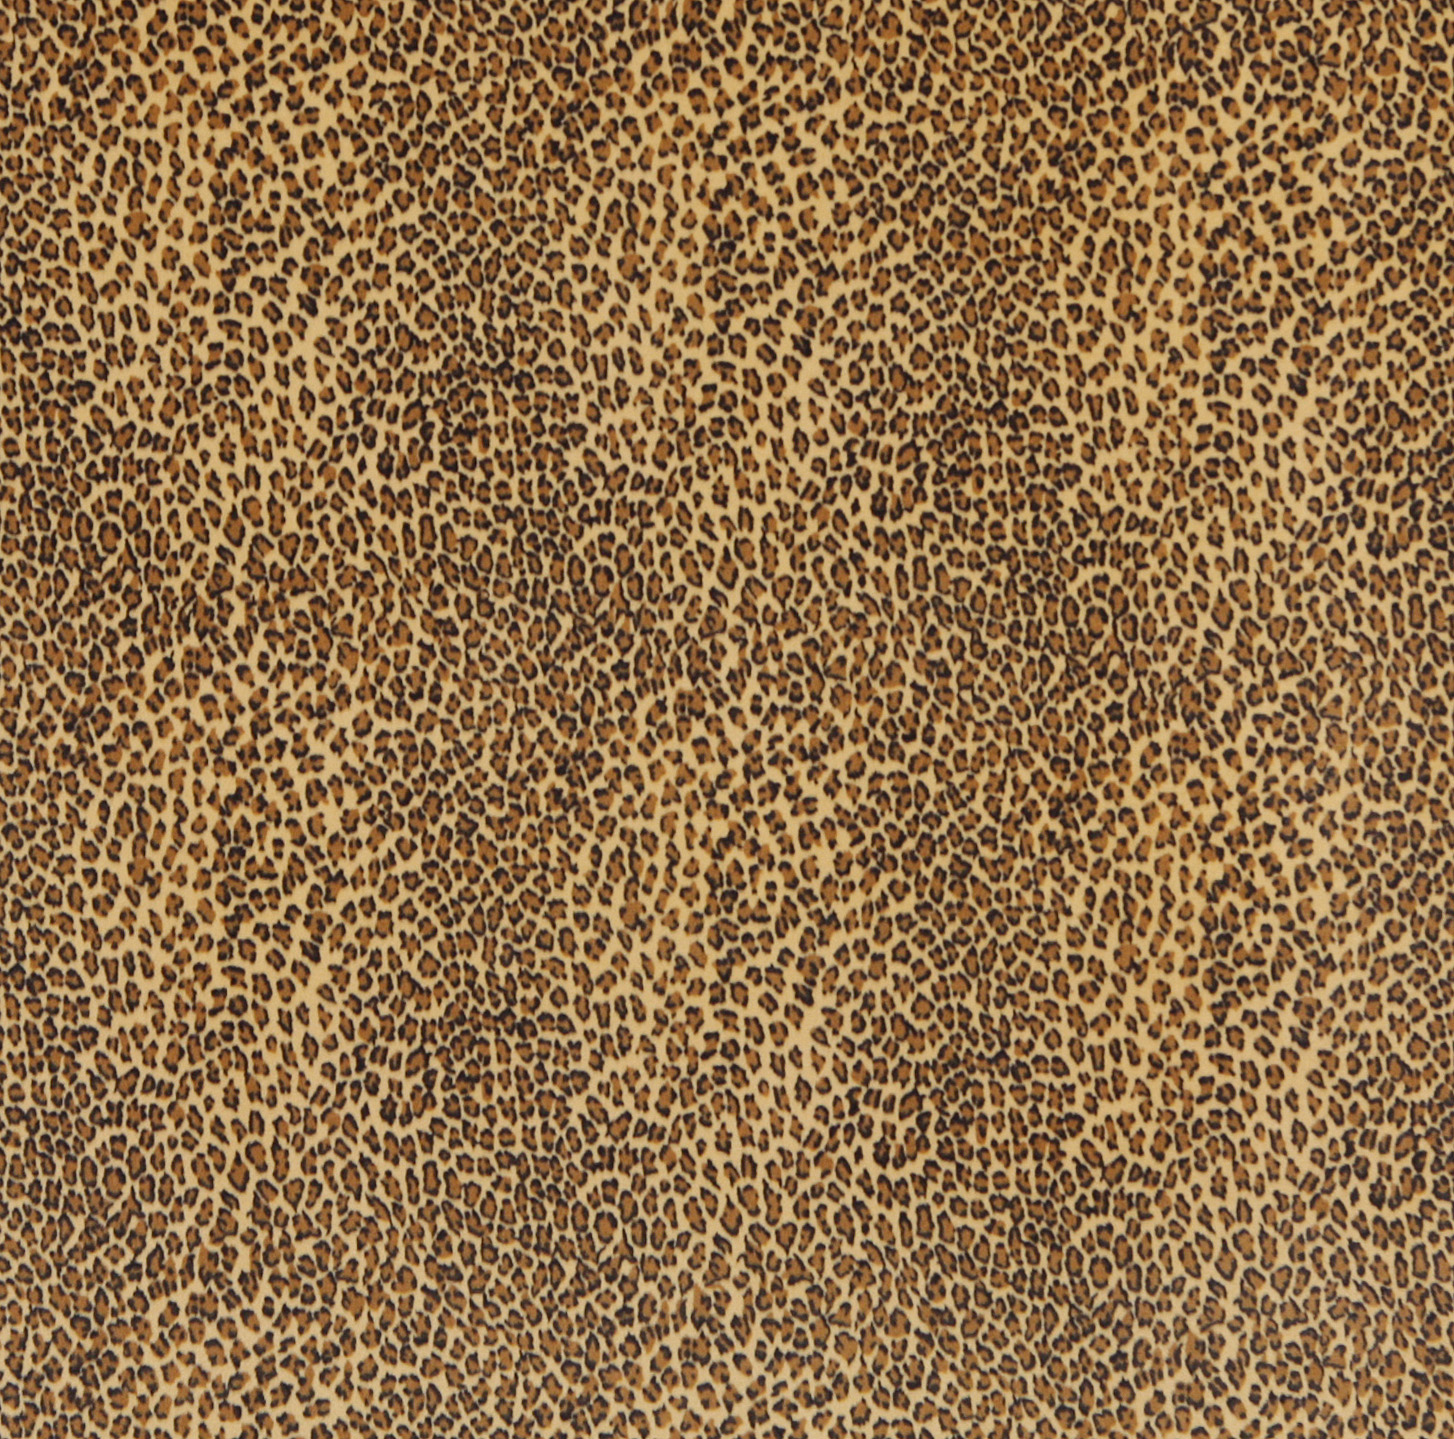 Nugget Black And Gold Leopard Faux Animal Print Microfiber